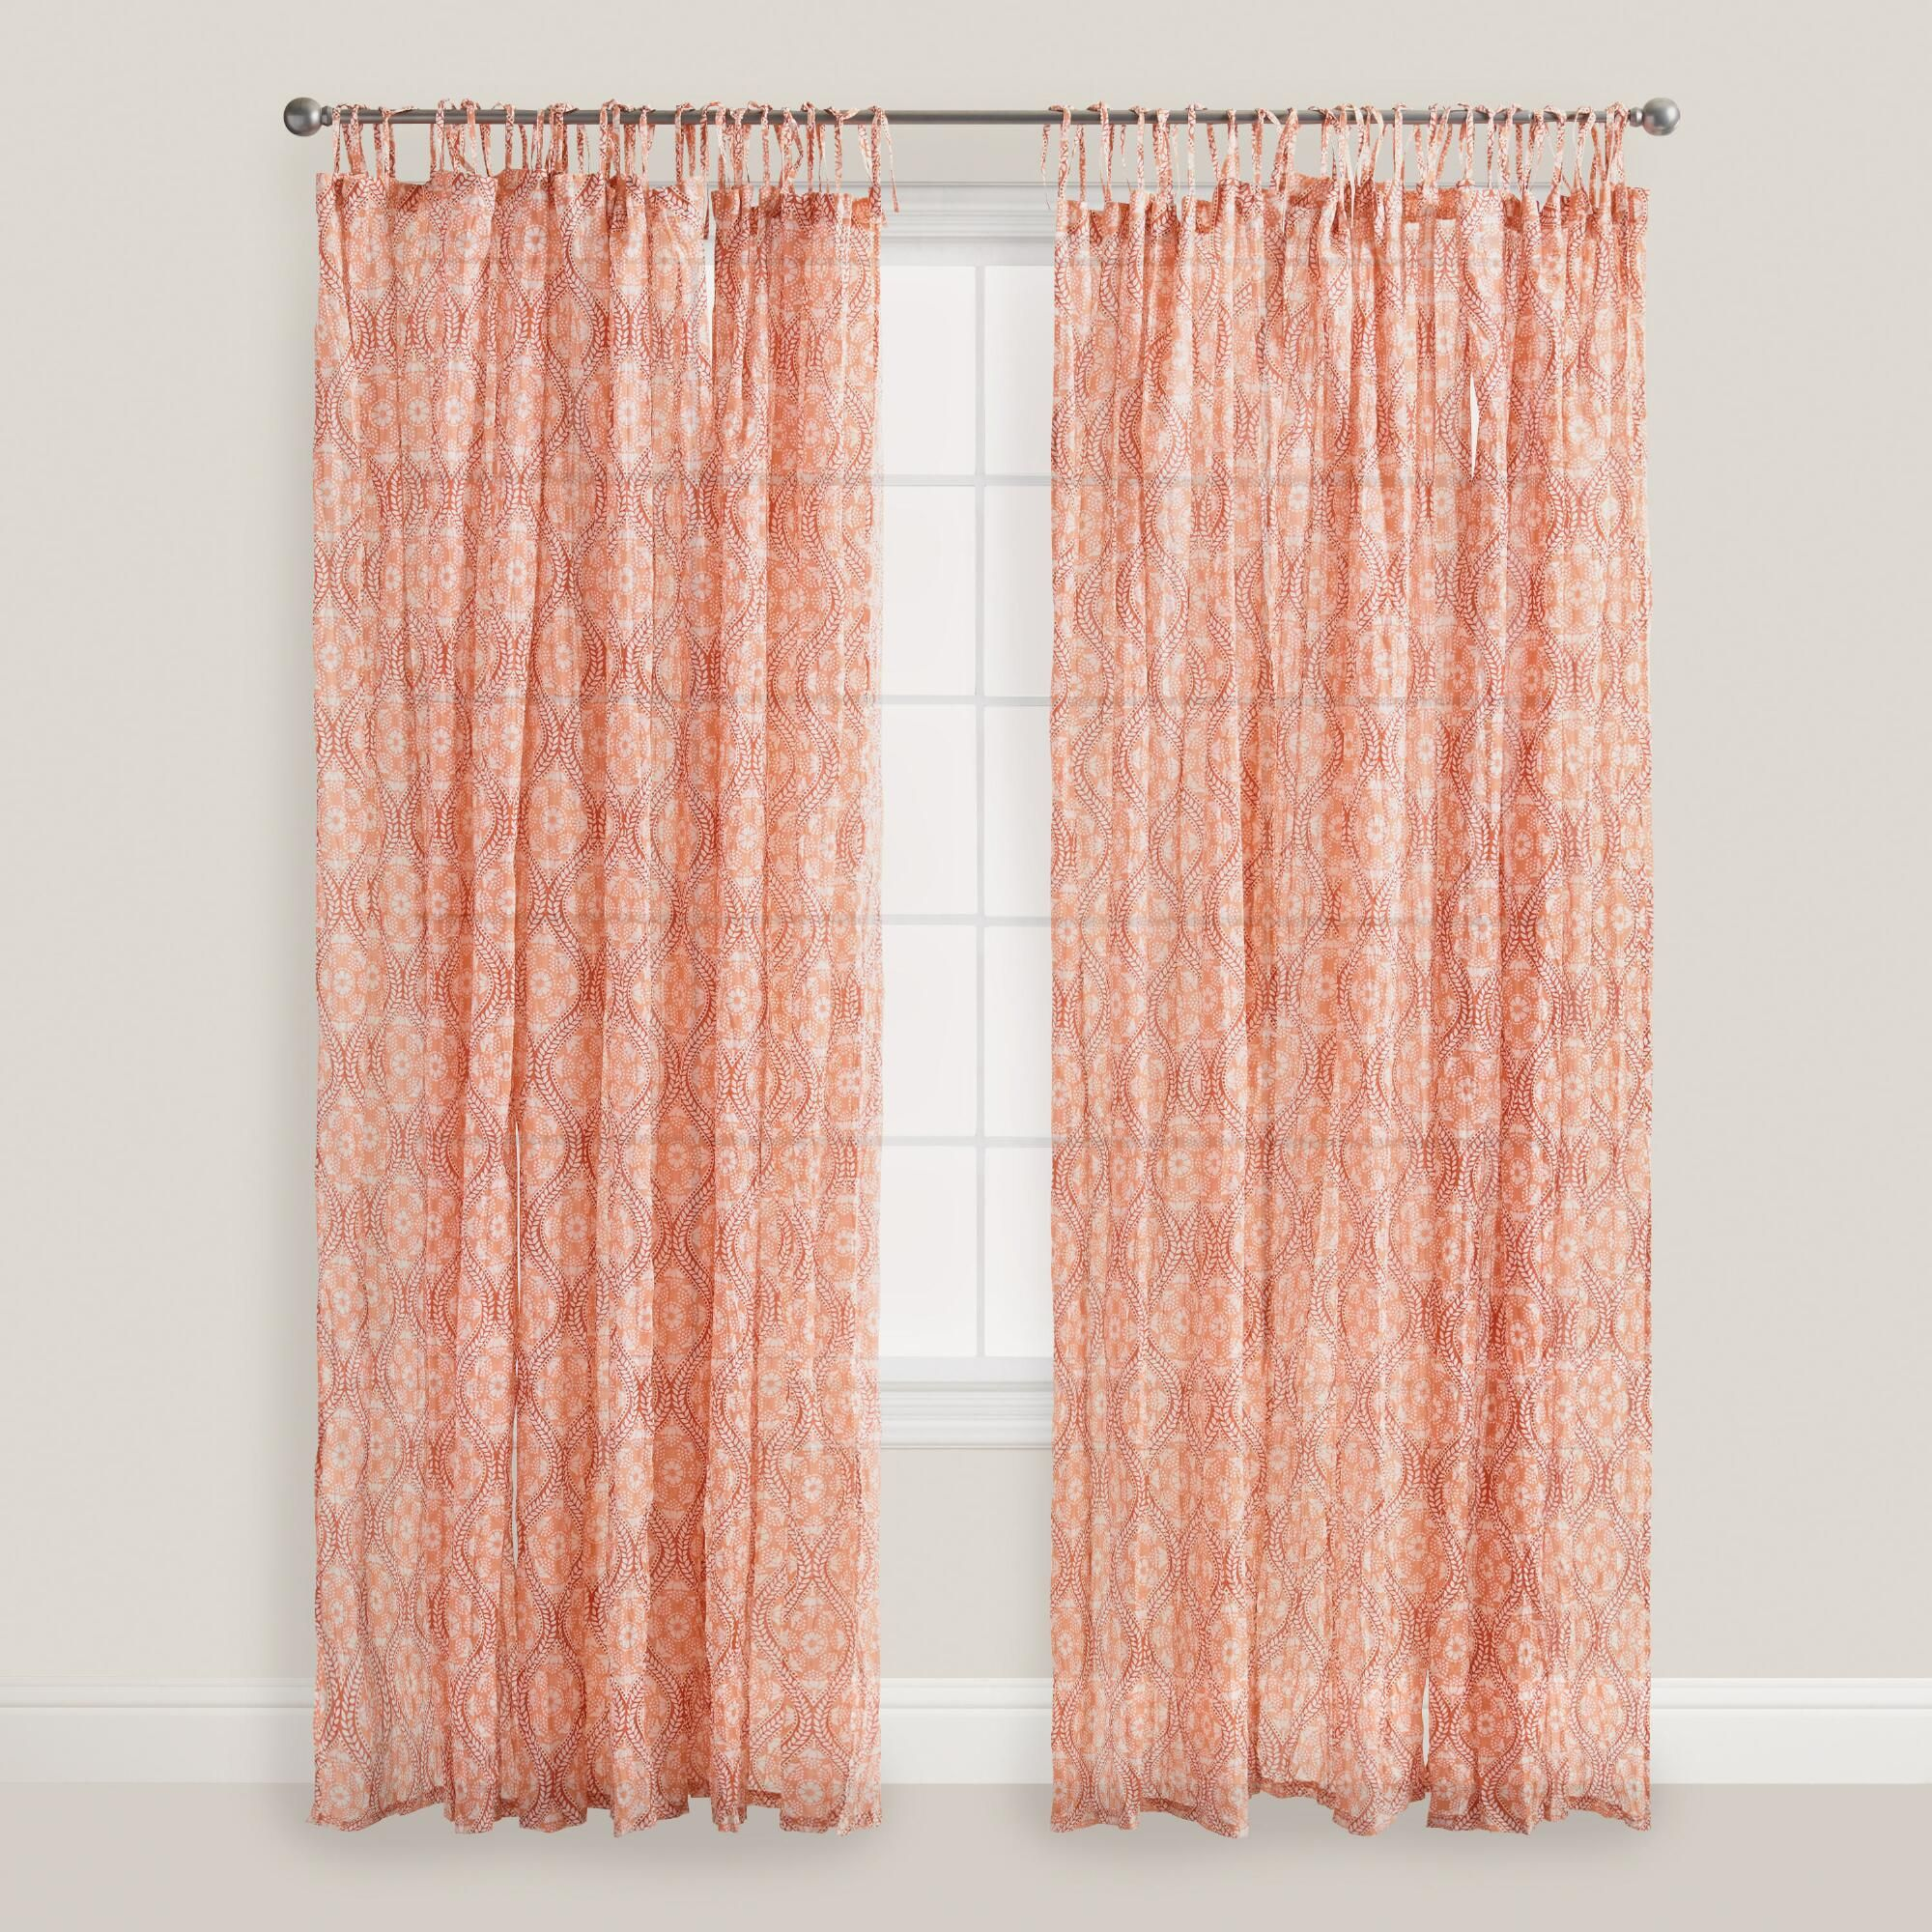 Light peach curtains -  39 99 Crafted Of Cotton Voile With Our Coral Ogee Medallion Pattern Our Exclusive Tie